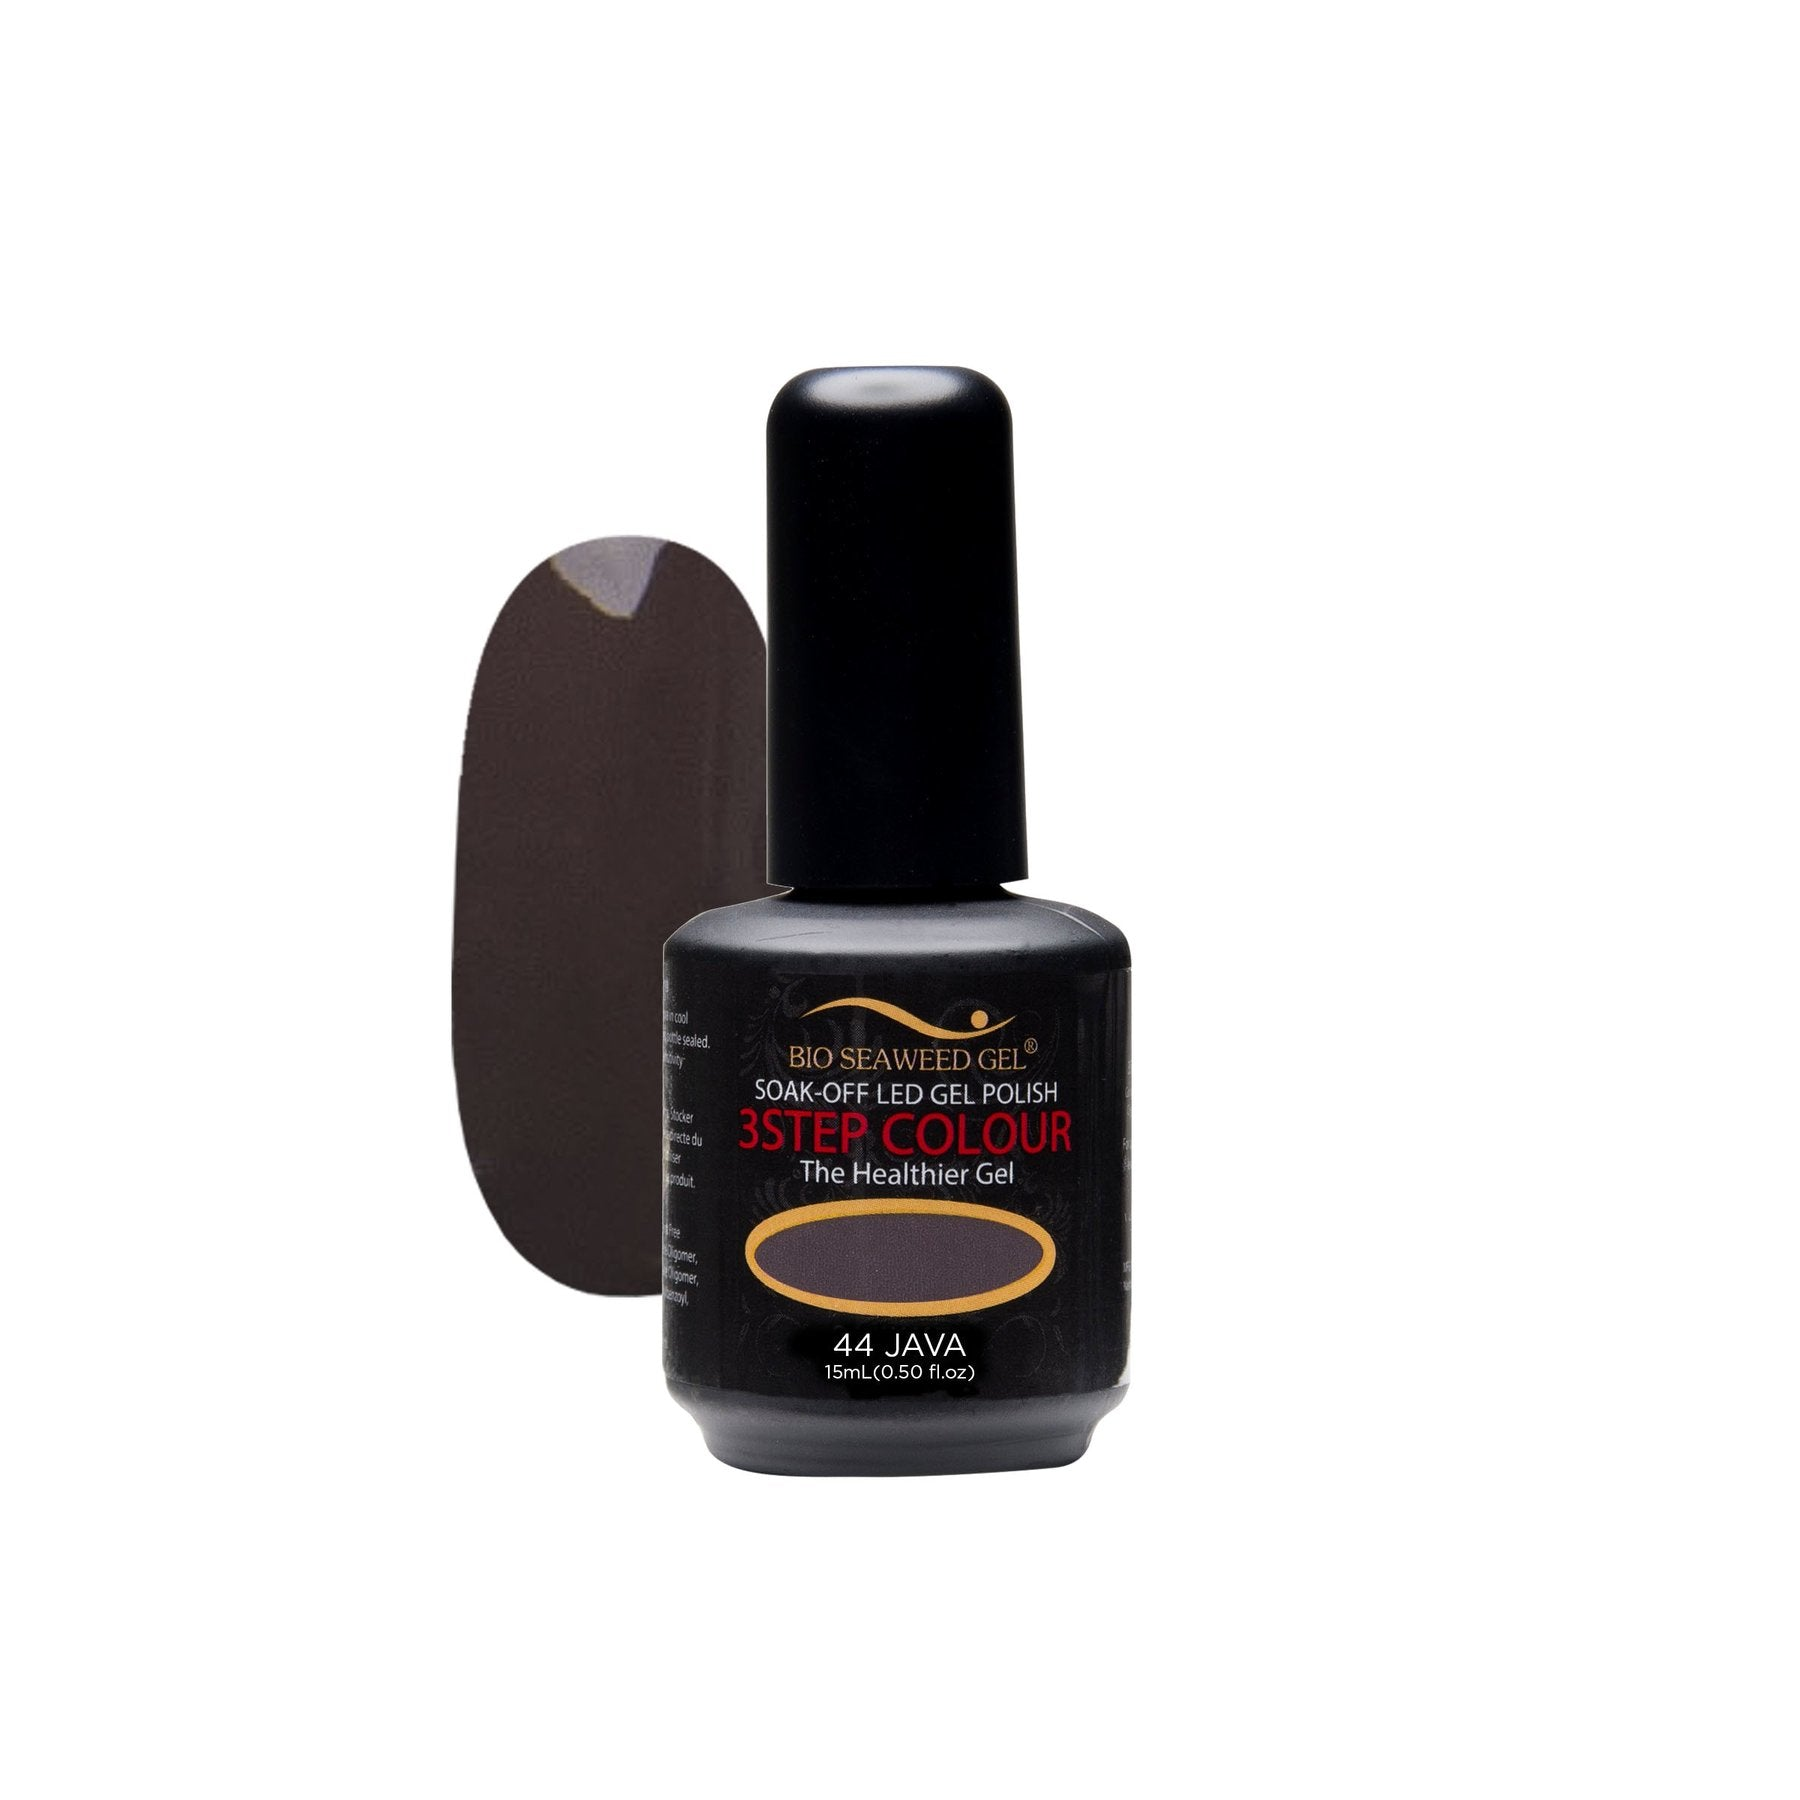 44 Java | Bio Seaweed Gel® - CM Nails & Beauty Supply